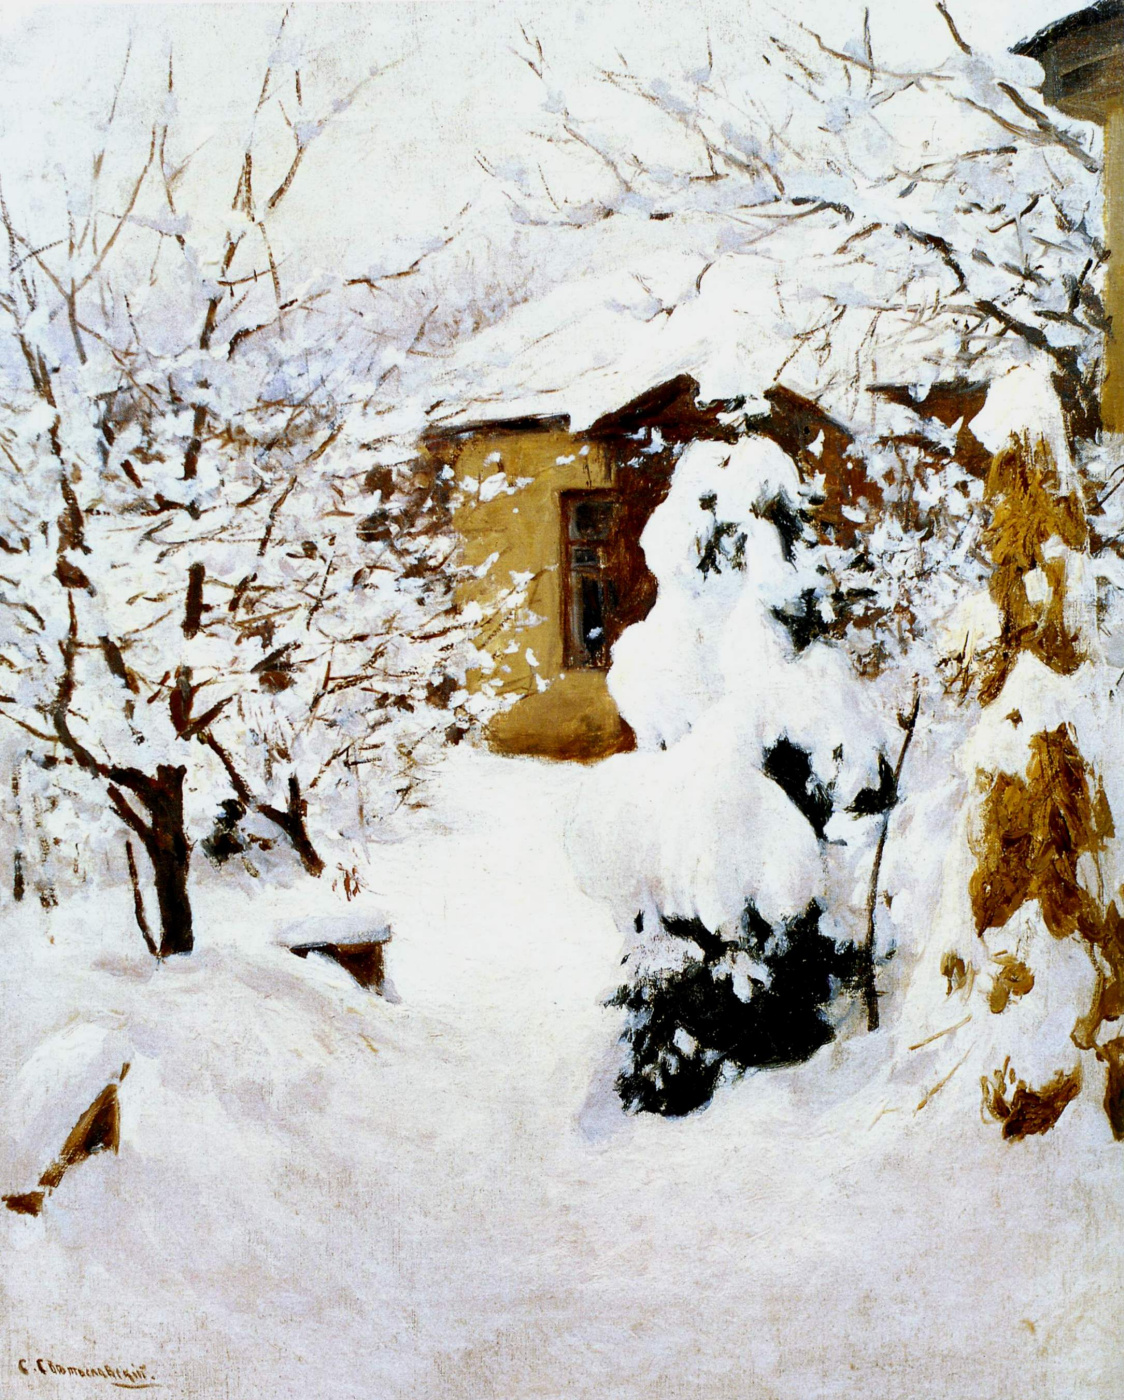 Sergey Ivanovich Svetoslavsky. Winter landscape. Manor of the artist. 1900s